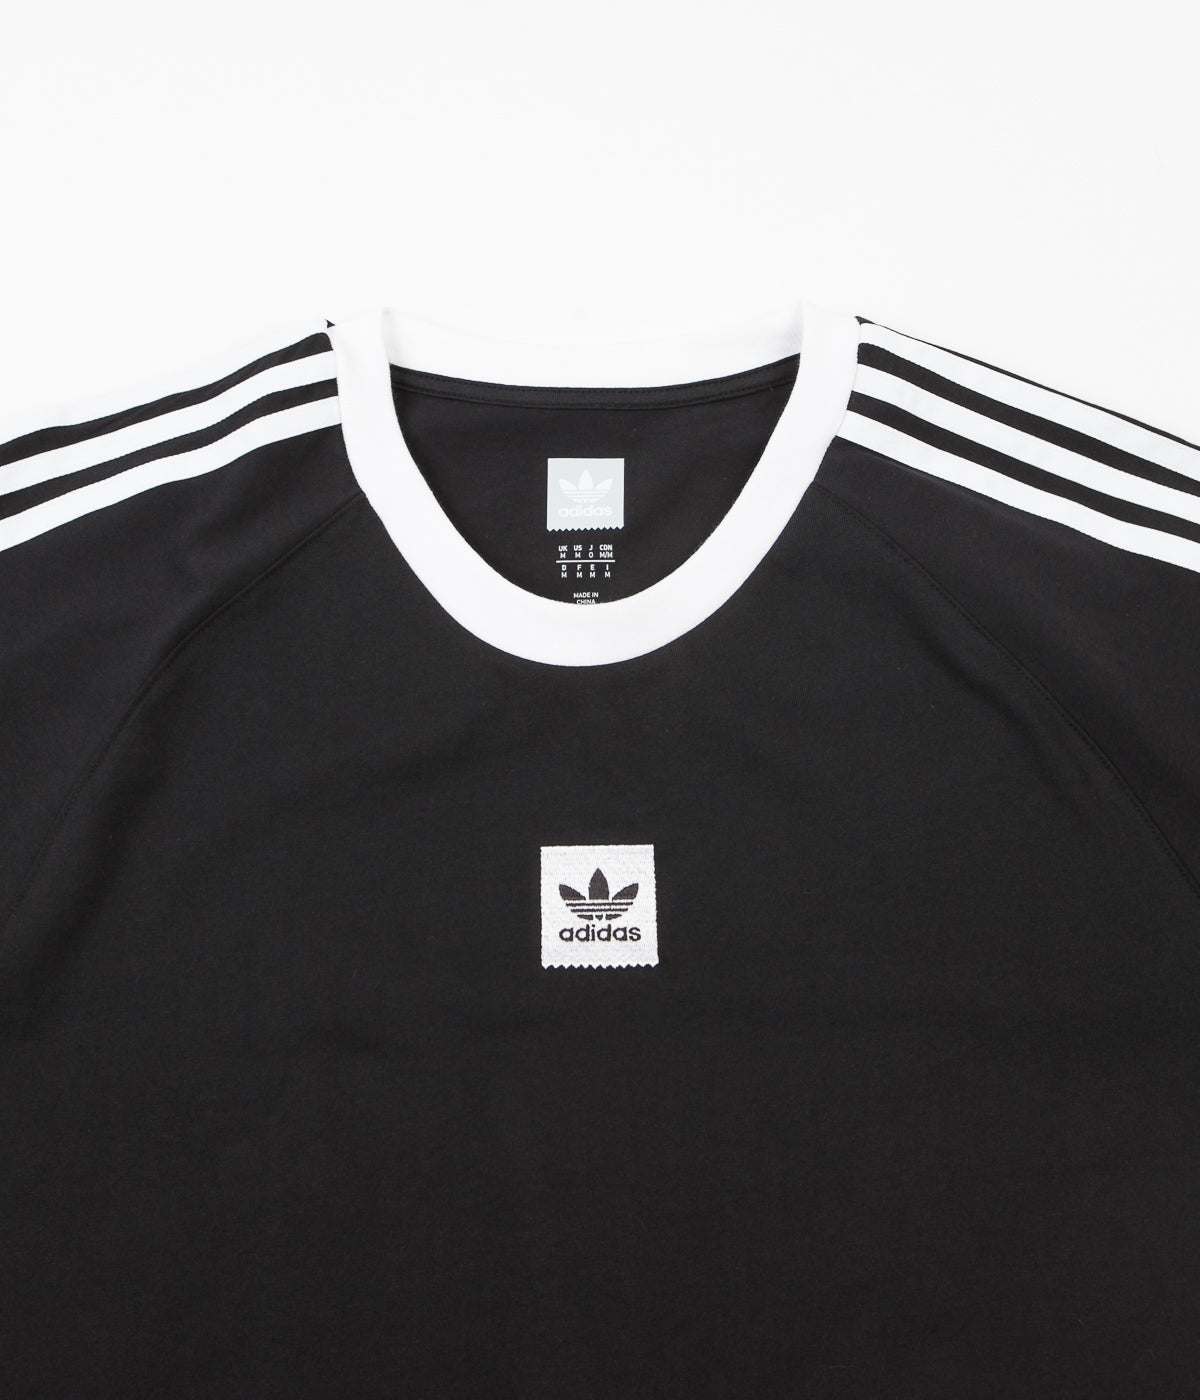 adidas shirt black and white